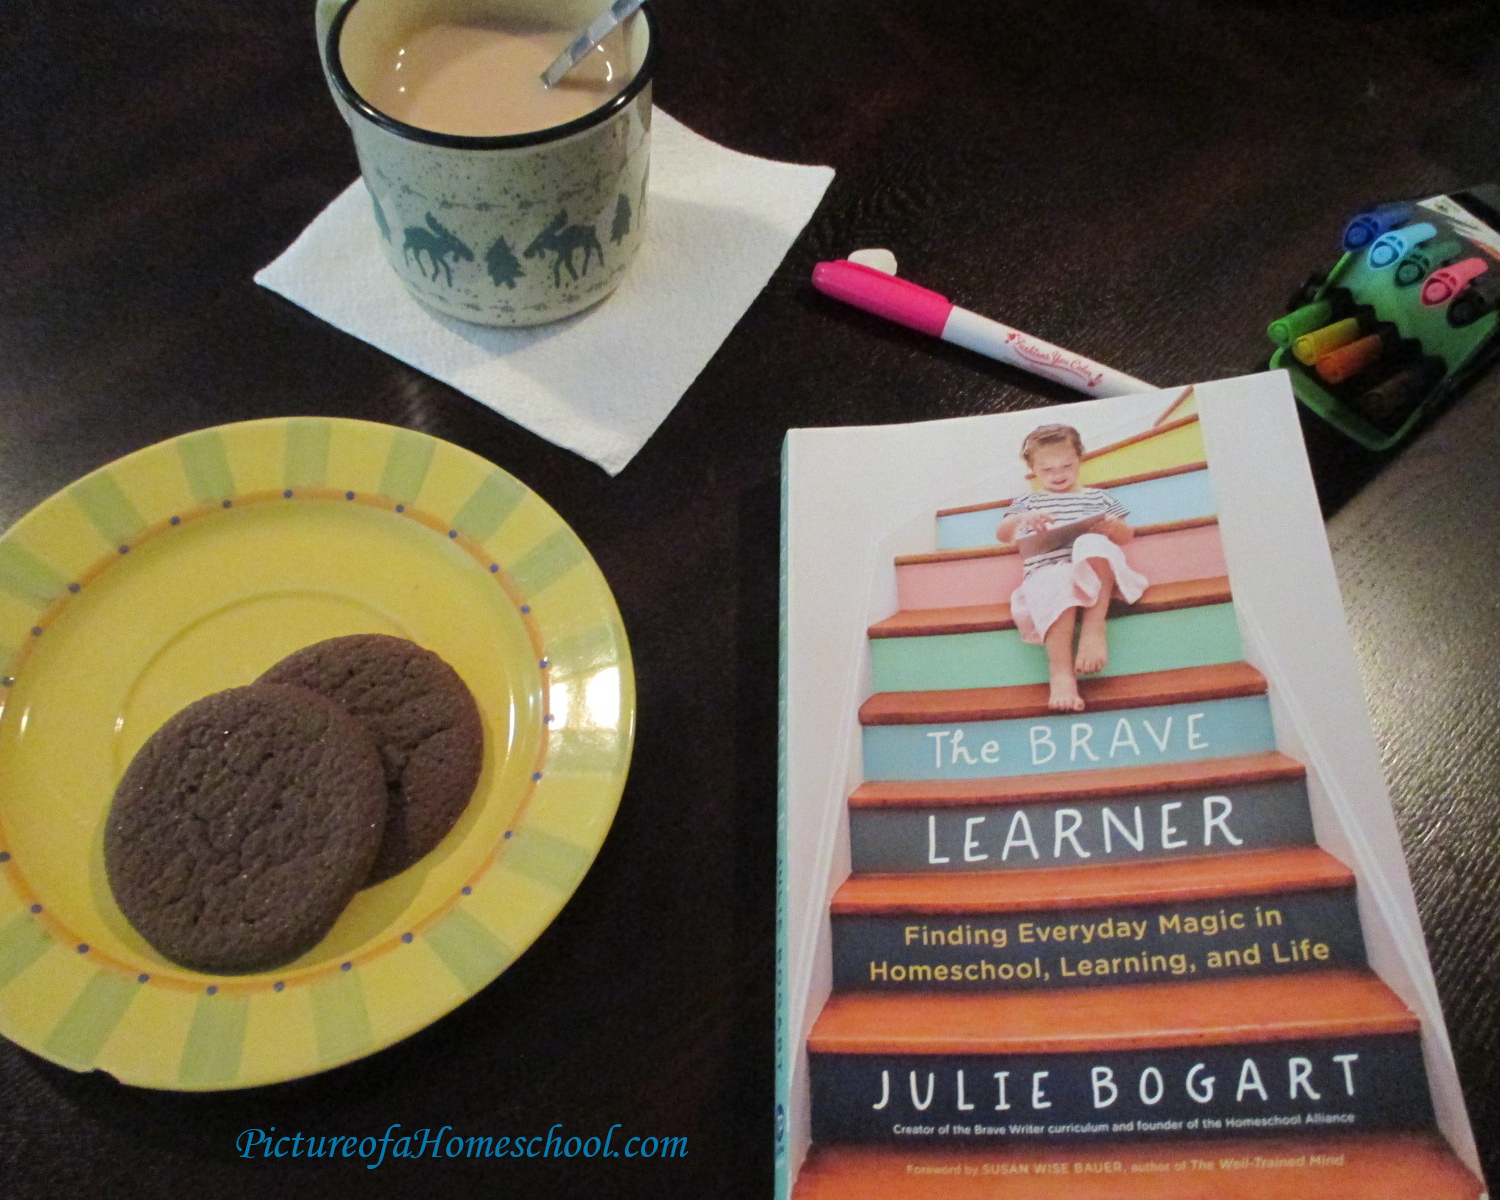 Book titled The Brave Learner